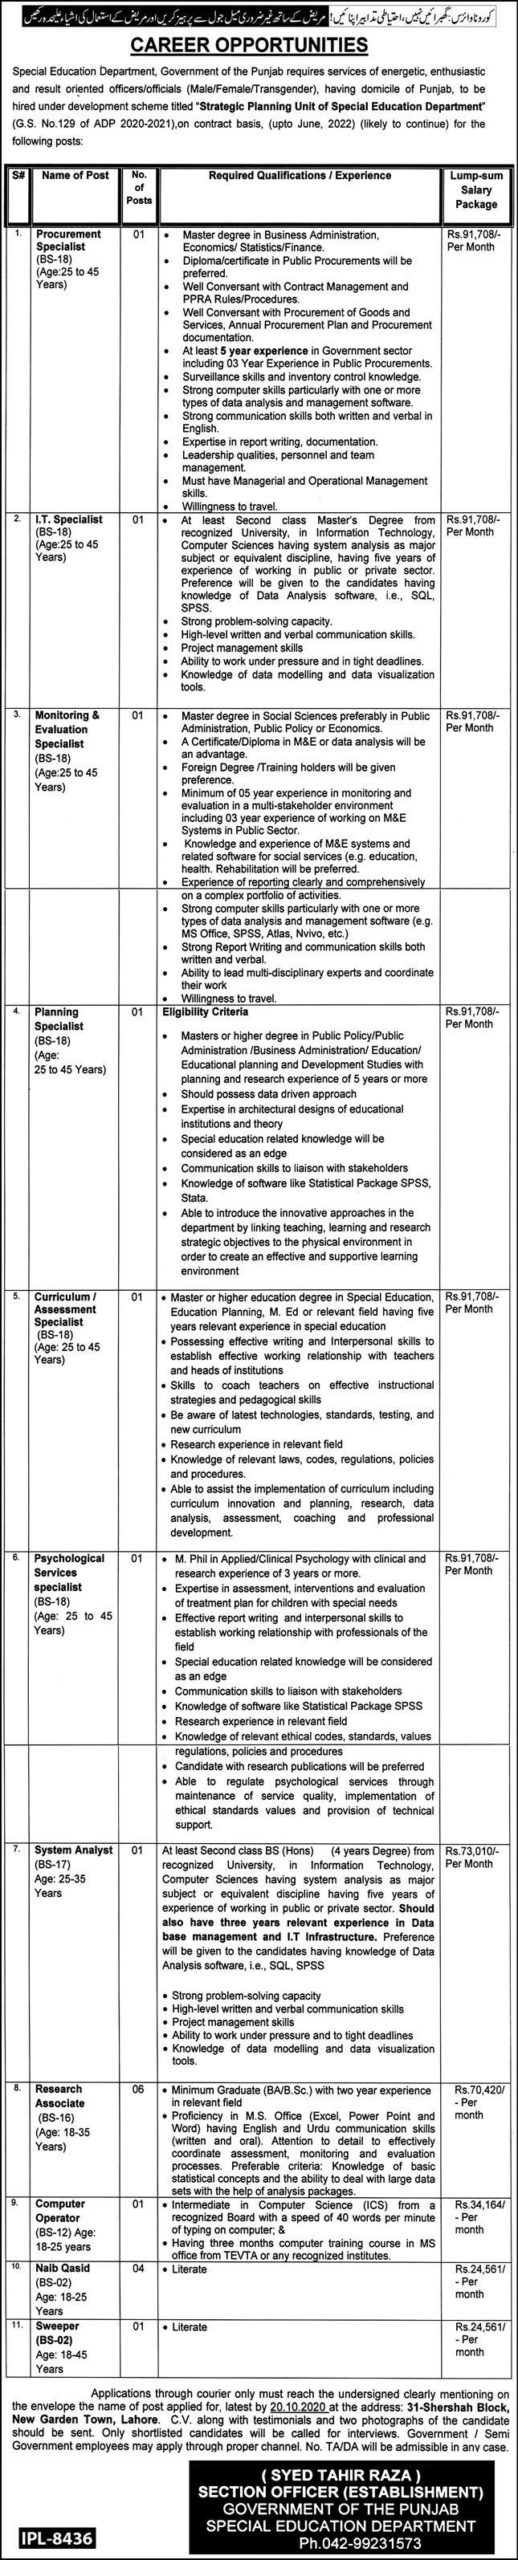 Special Education Department Punjab Jobs October 2020 for Procurement Specialist, IT, Monitoring & Evaluation, Planning, Curriculum / Assessment, Psychological Services, System Analyst, Research Associate, Computer Operator, Naib Qasid, Sweeper Latest